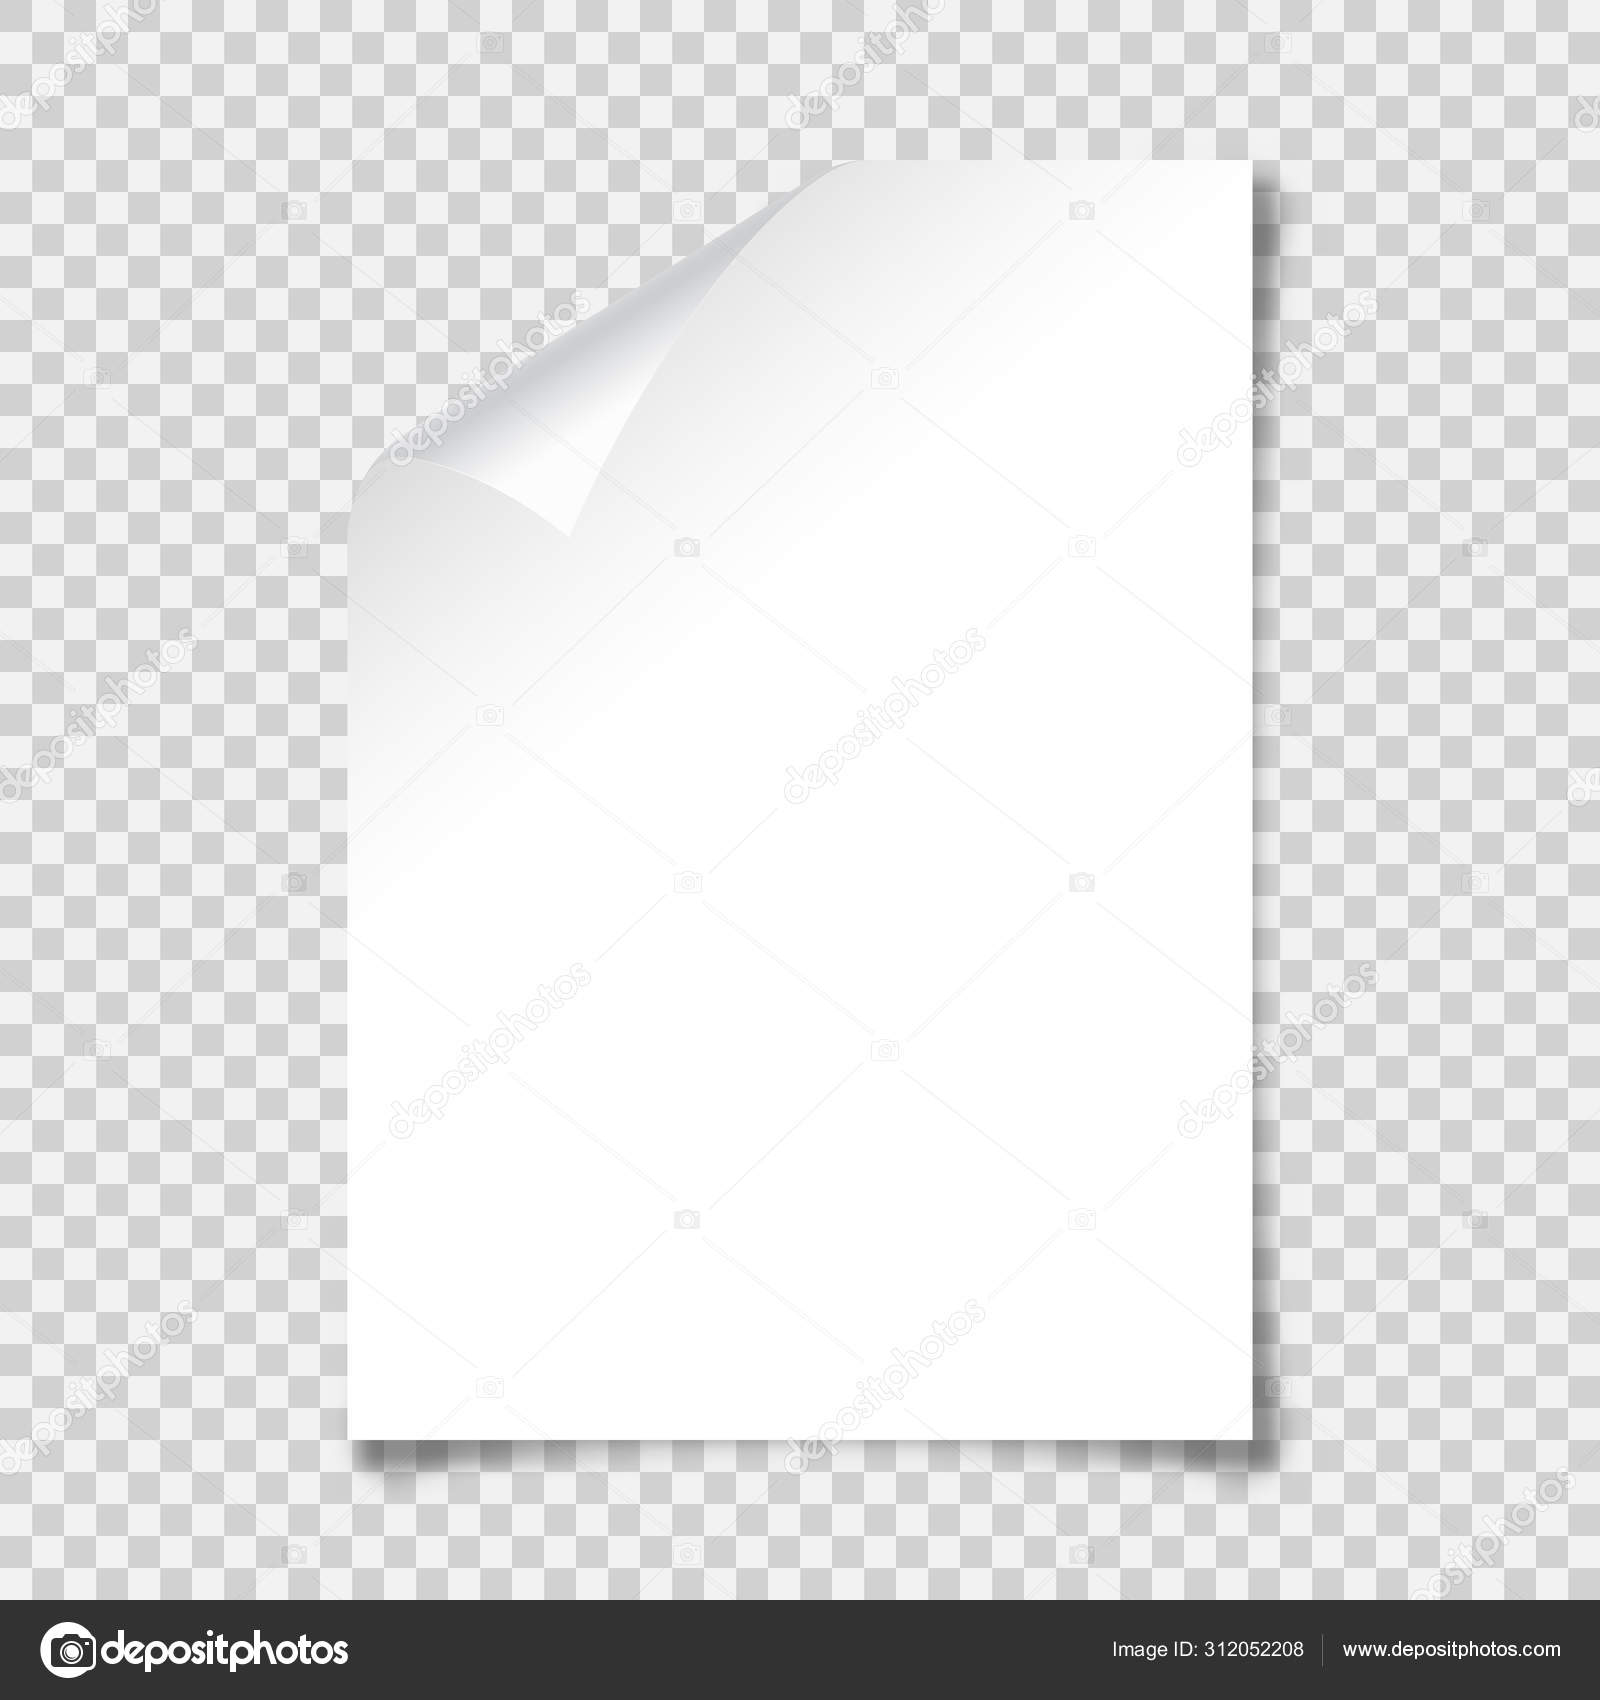 Realistic Blank Paper Sheet With Shadow In A4 Format On